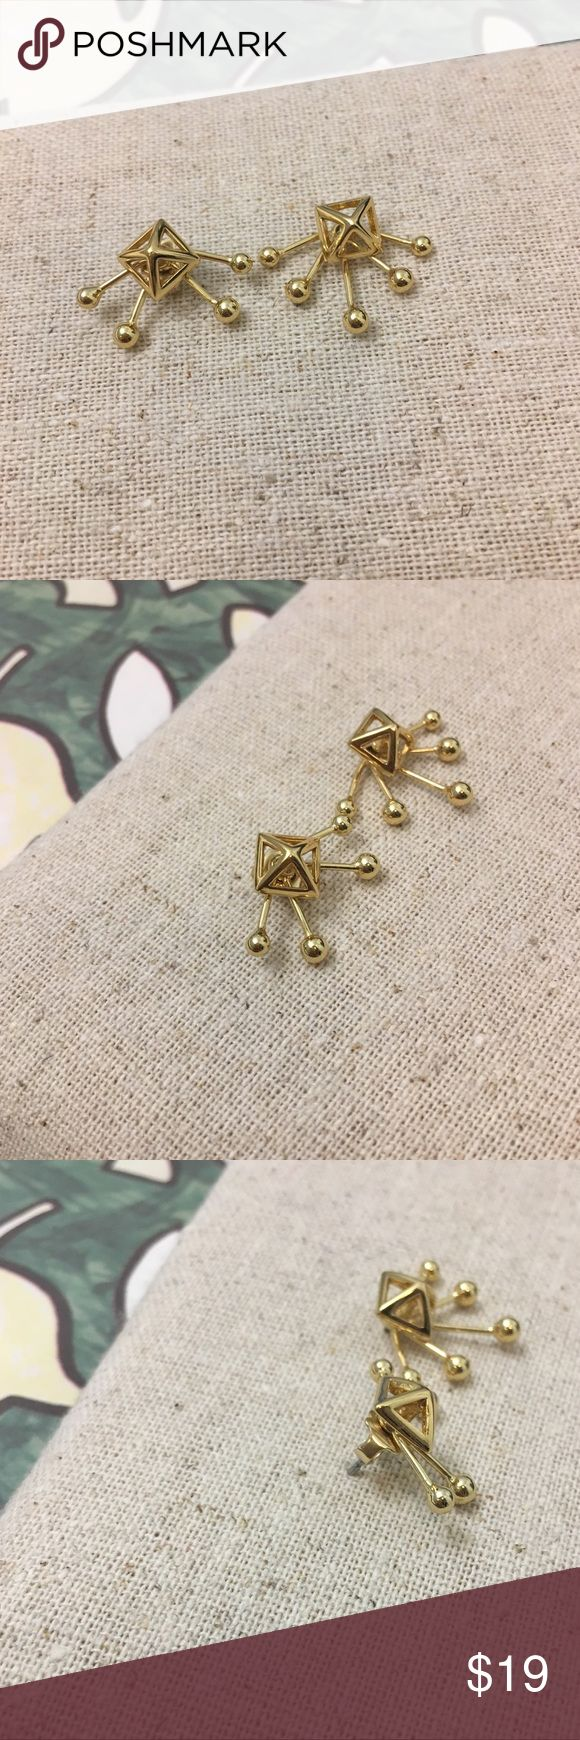 [NEW] Rebecca Minkoff 3-D star earrings Modern earrings by Rebacca Minkoff; 3 dimensional; the top layer can be used as a separate pair of earrings! Key words: modern, triangle, 3-D, star, gold Rebecca Minkoff Jewelry Earrings